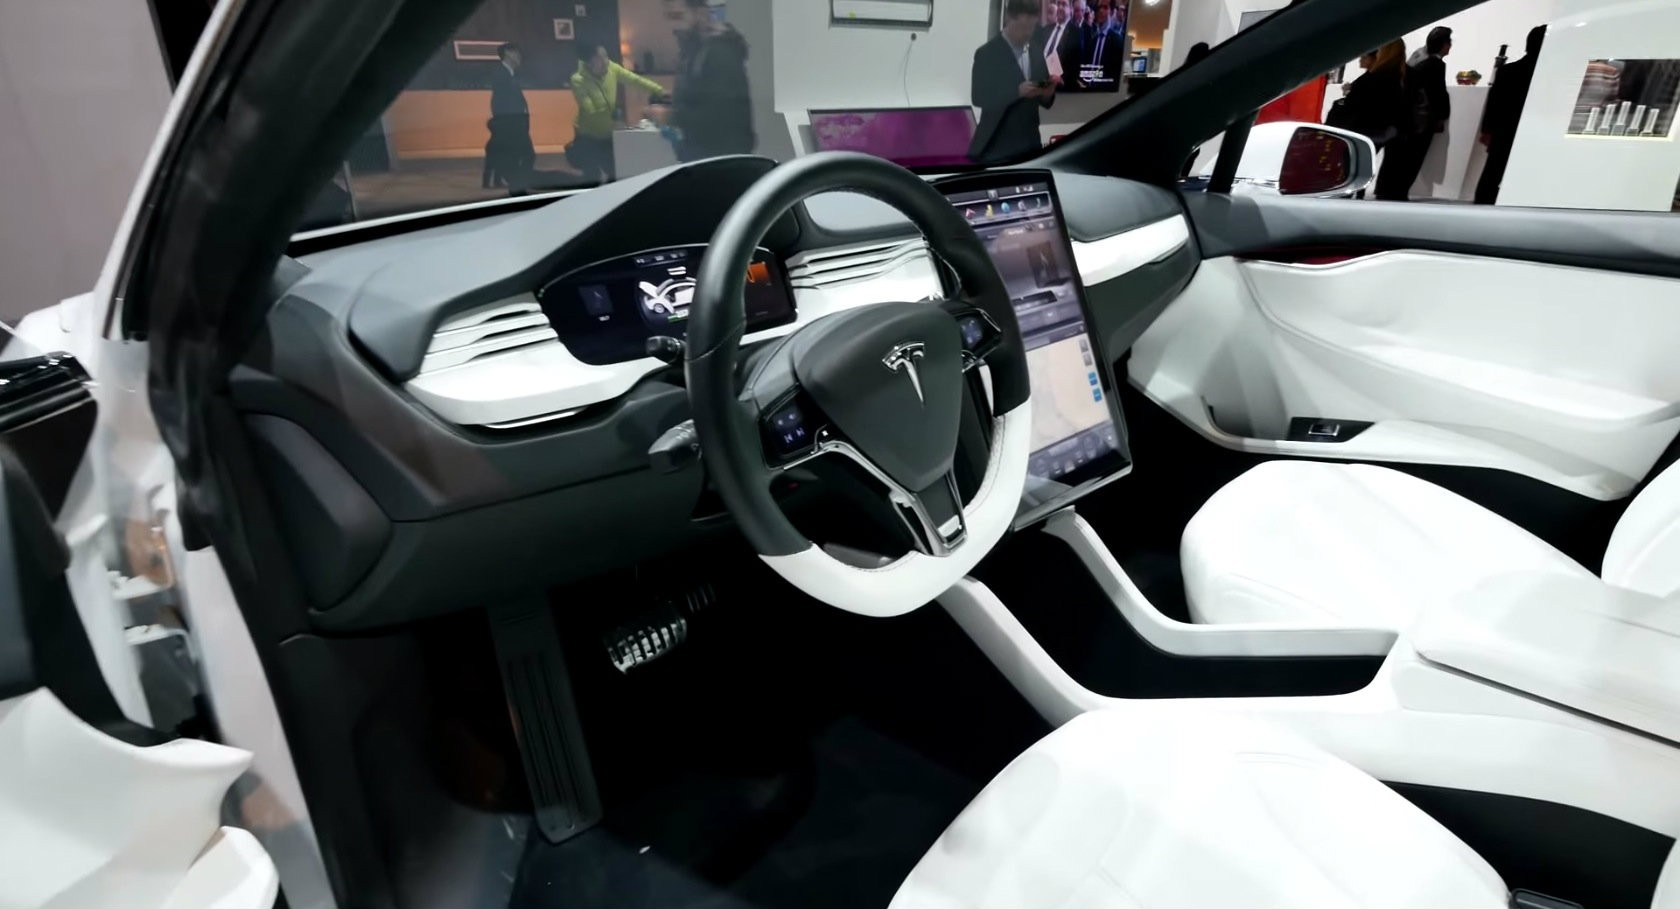 Tesla Model X Electric Crossover Displayed at the Panasonic Booth at CES [Video] - autoevolution